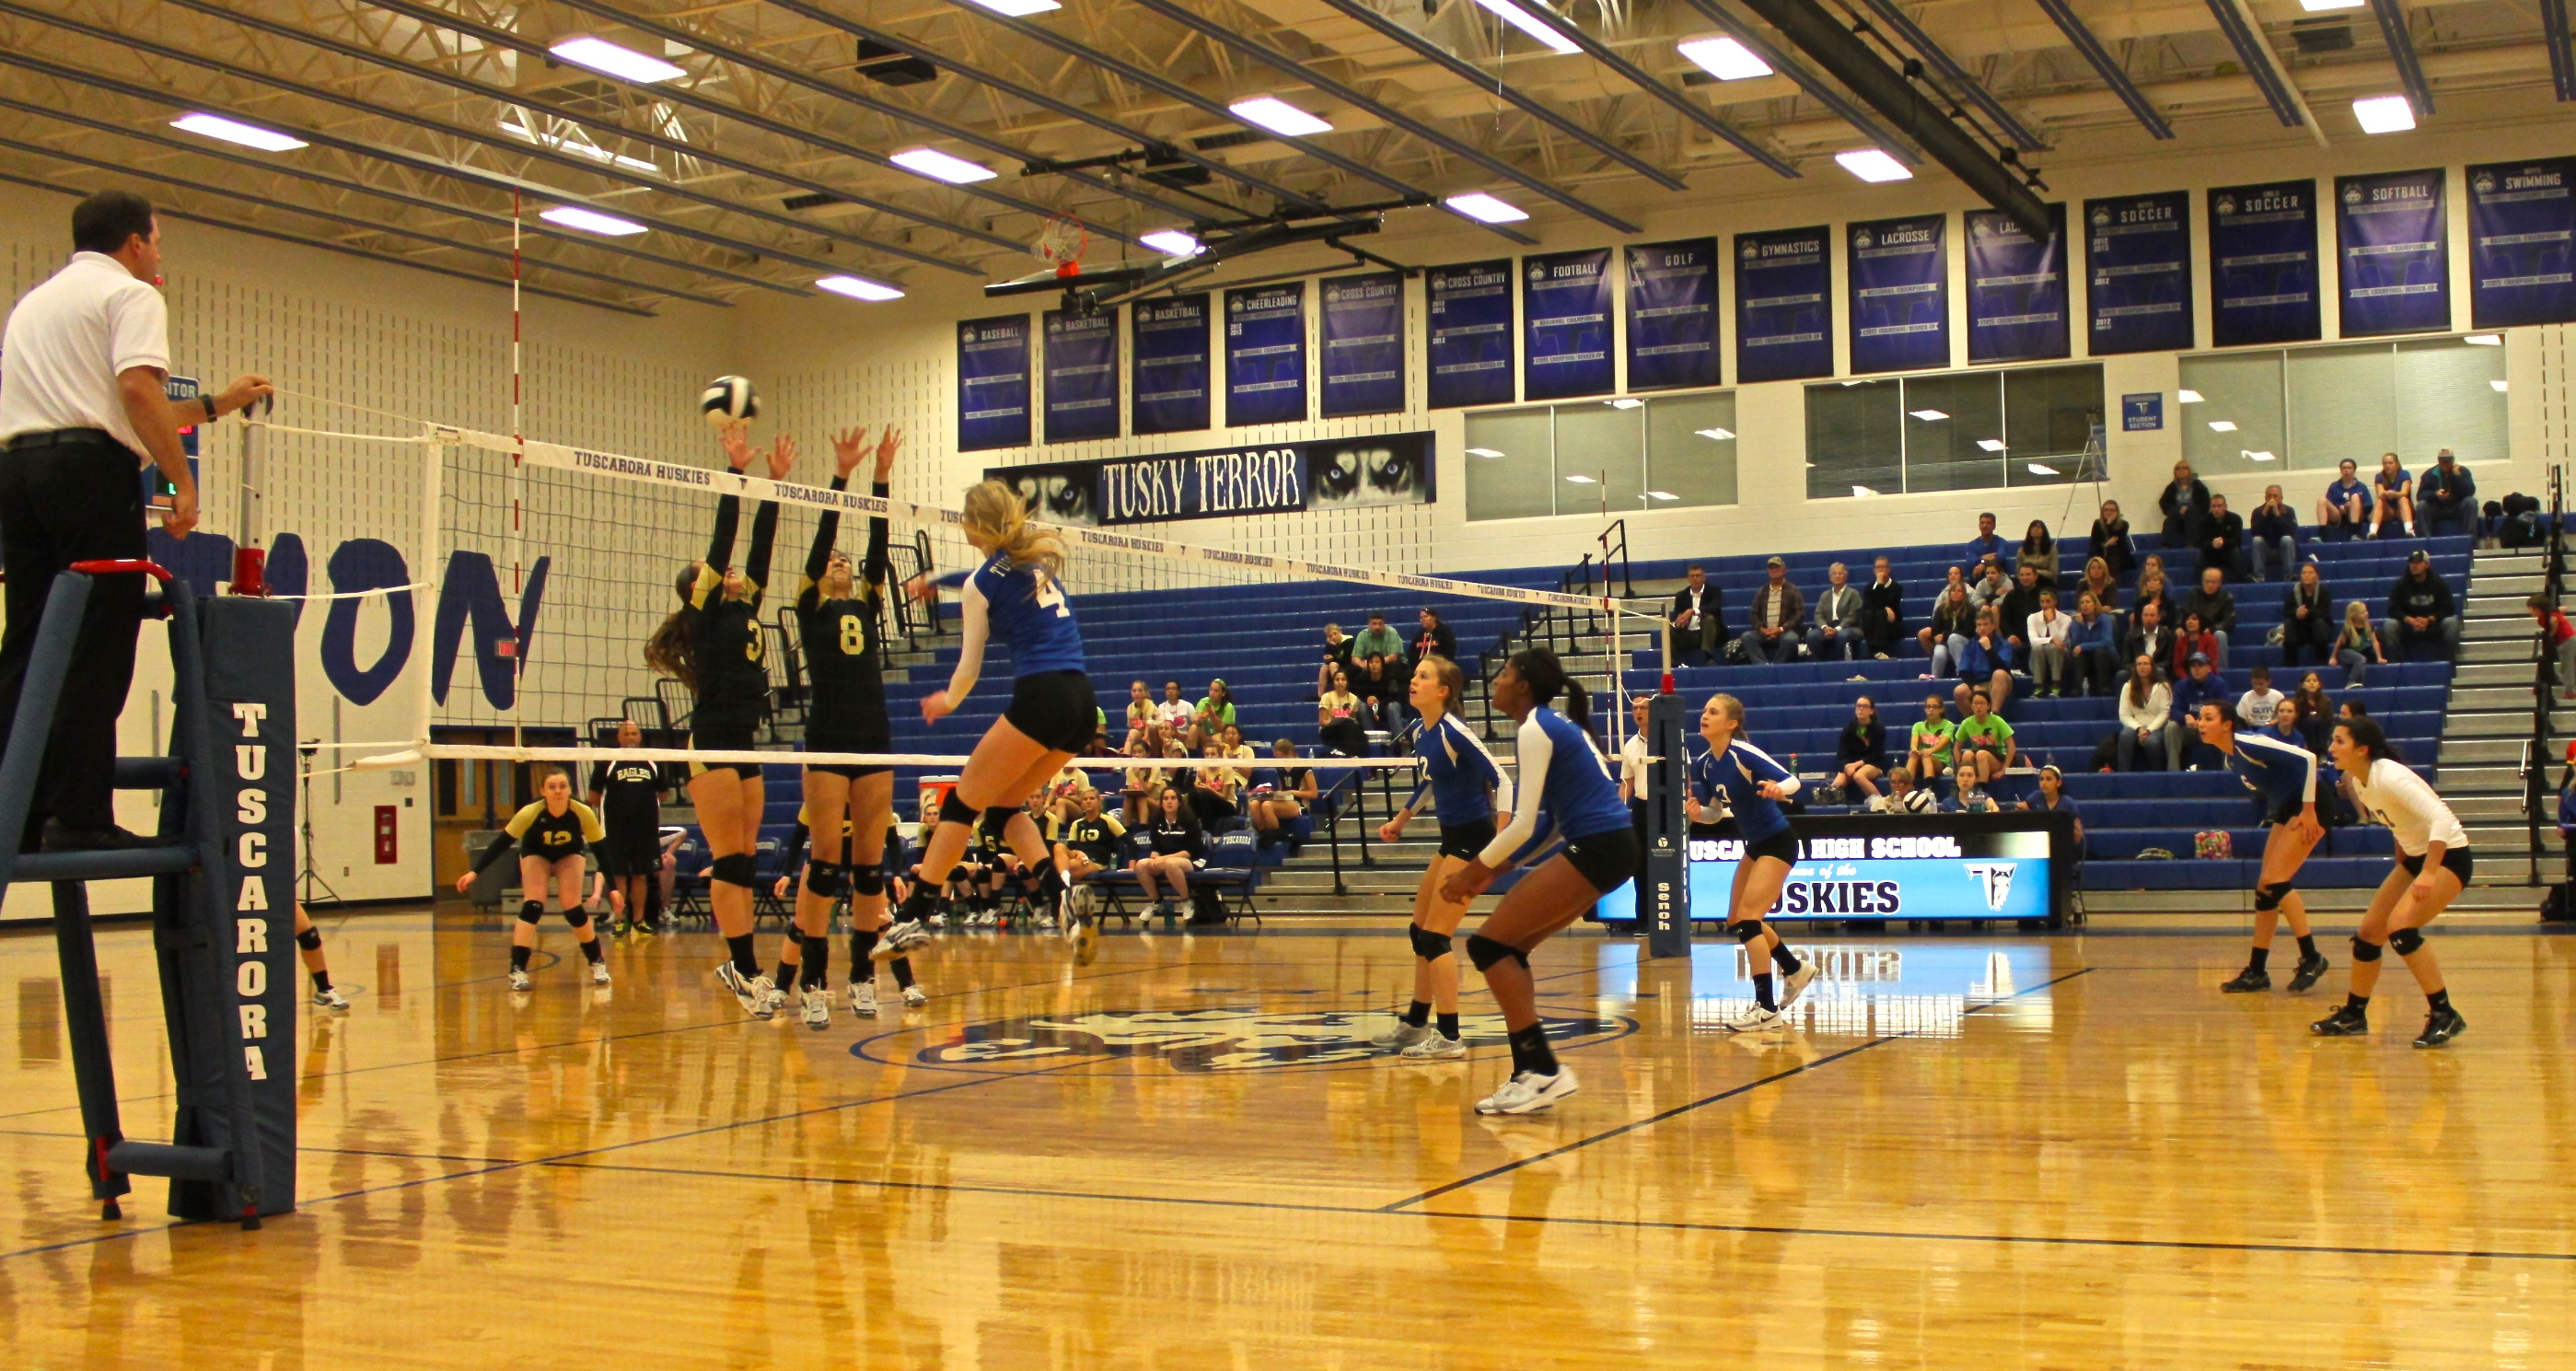 Junior Sydney Garrell delivering a successful spike which led to the 25-15 score in the 2nd Quarter. Photo credit: Rikki Pepino